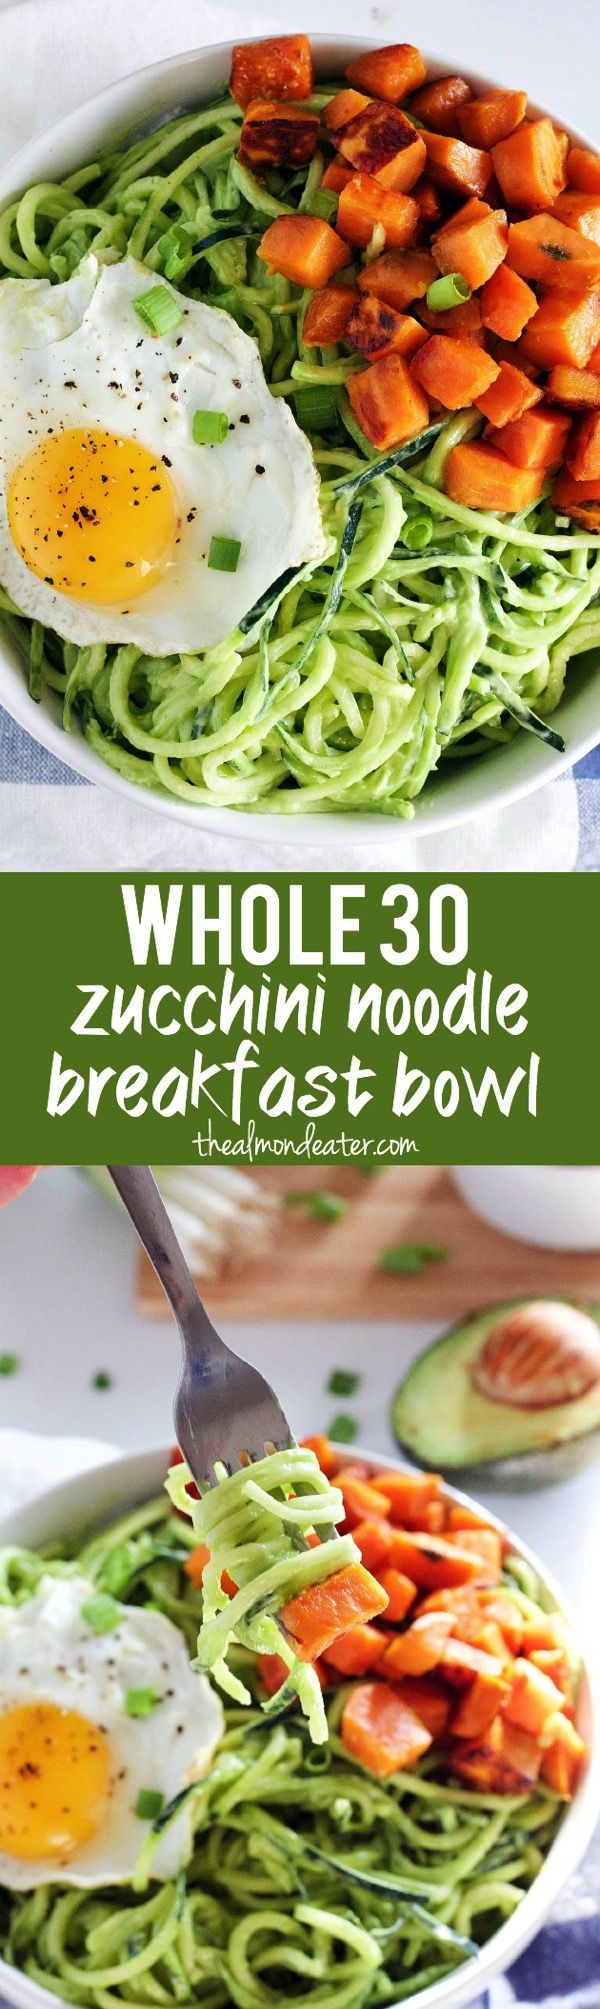 Zucchini noodle covered in a creamy avocado sauce and topped with sweet potatoes and a fried egg #Whole30